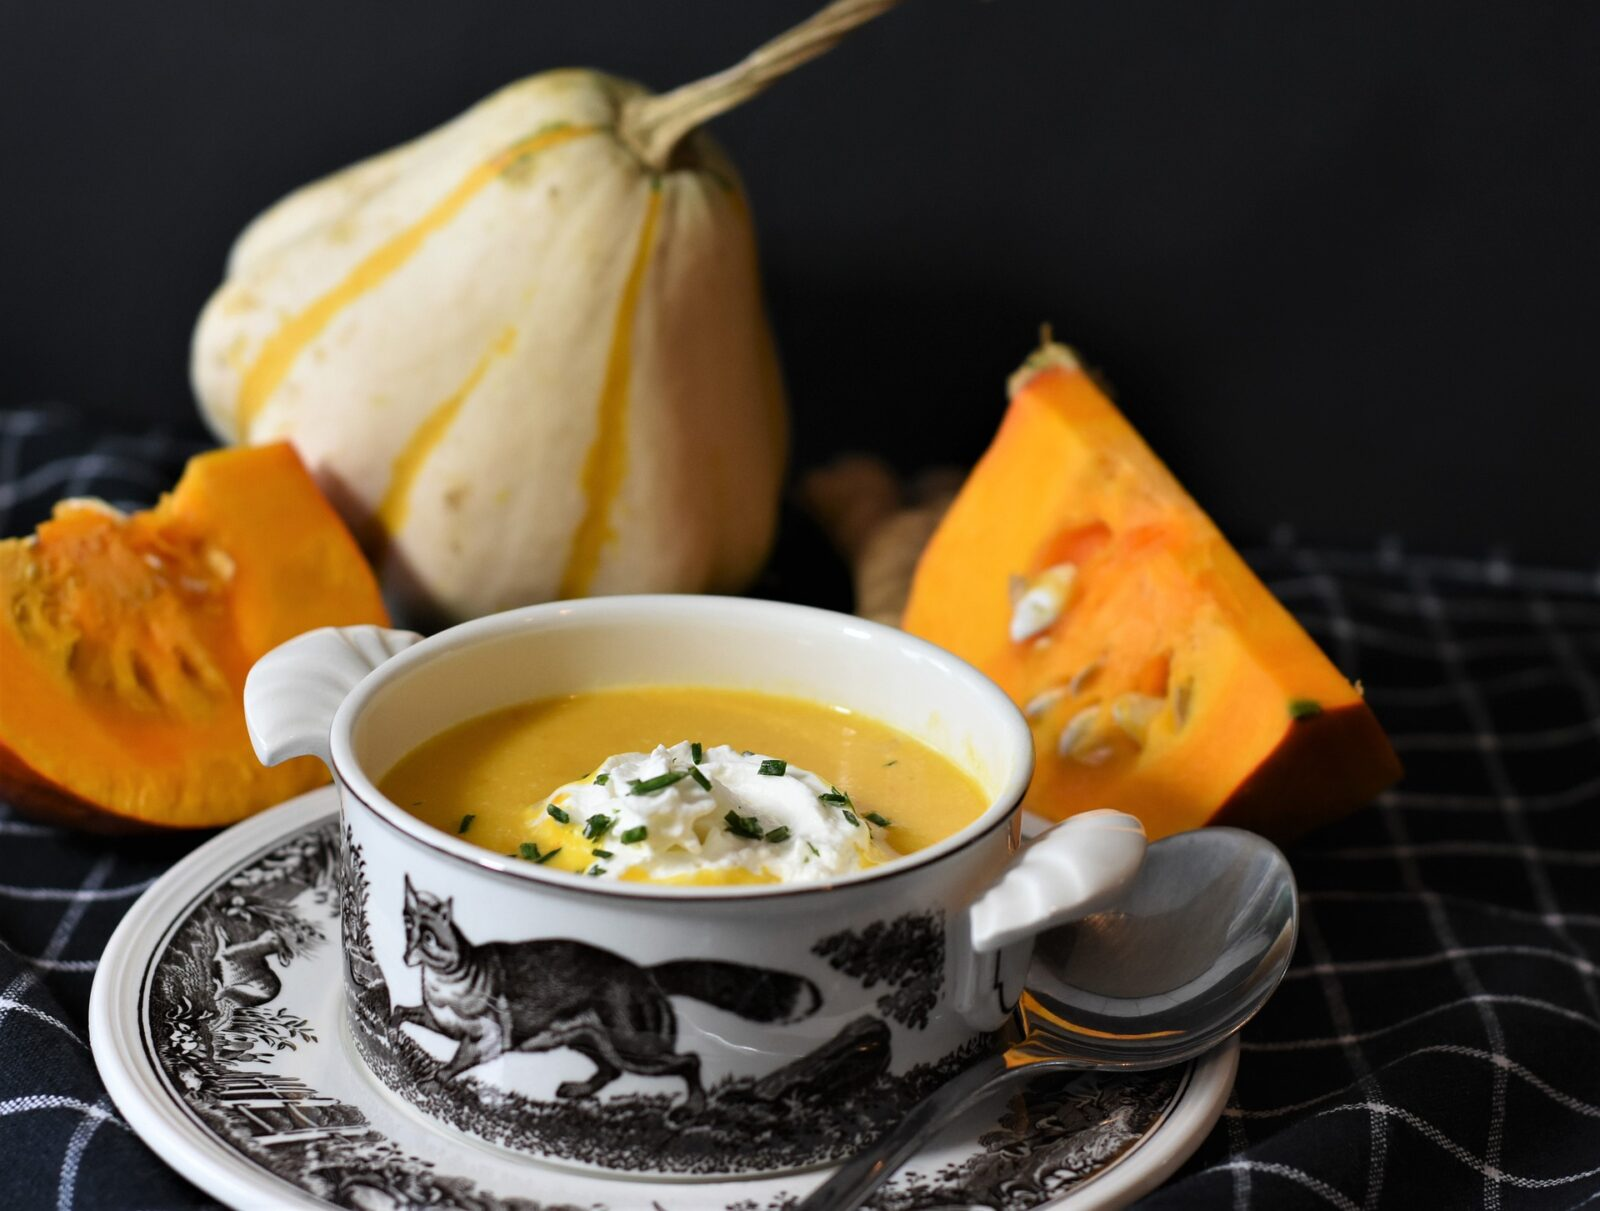 bowl of pumpkin soup after substituting healthier ingredients maintaining tasty flavor